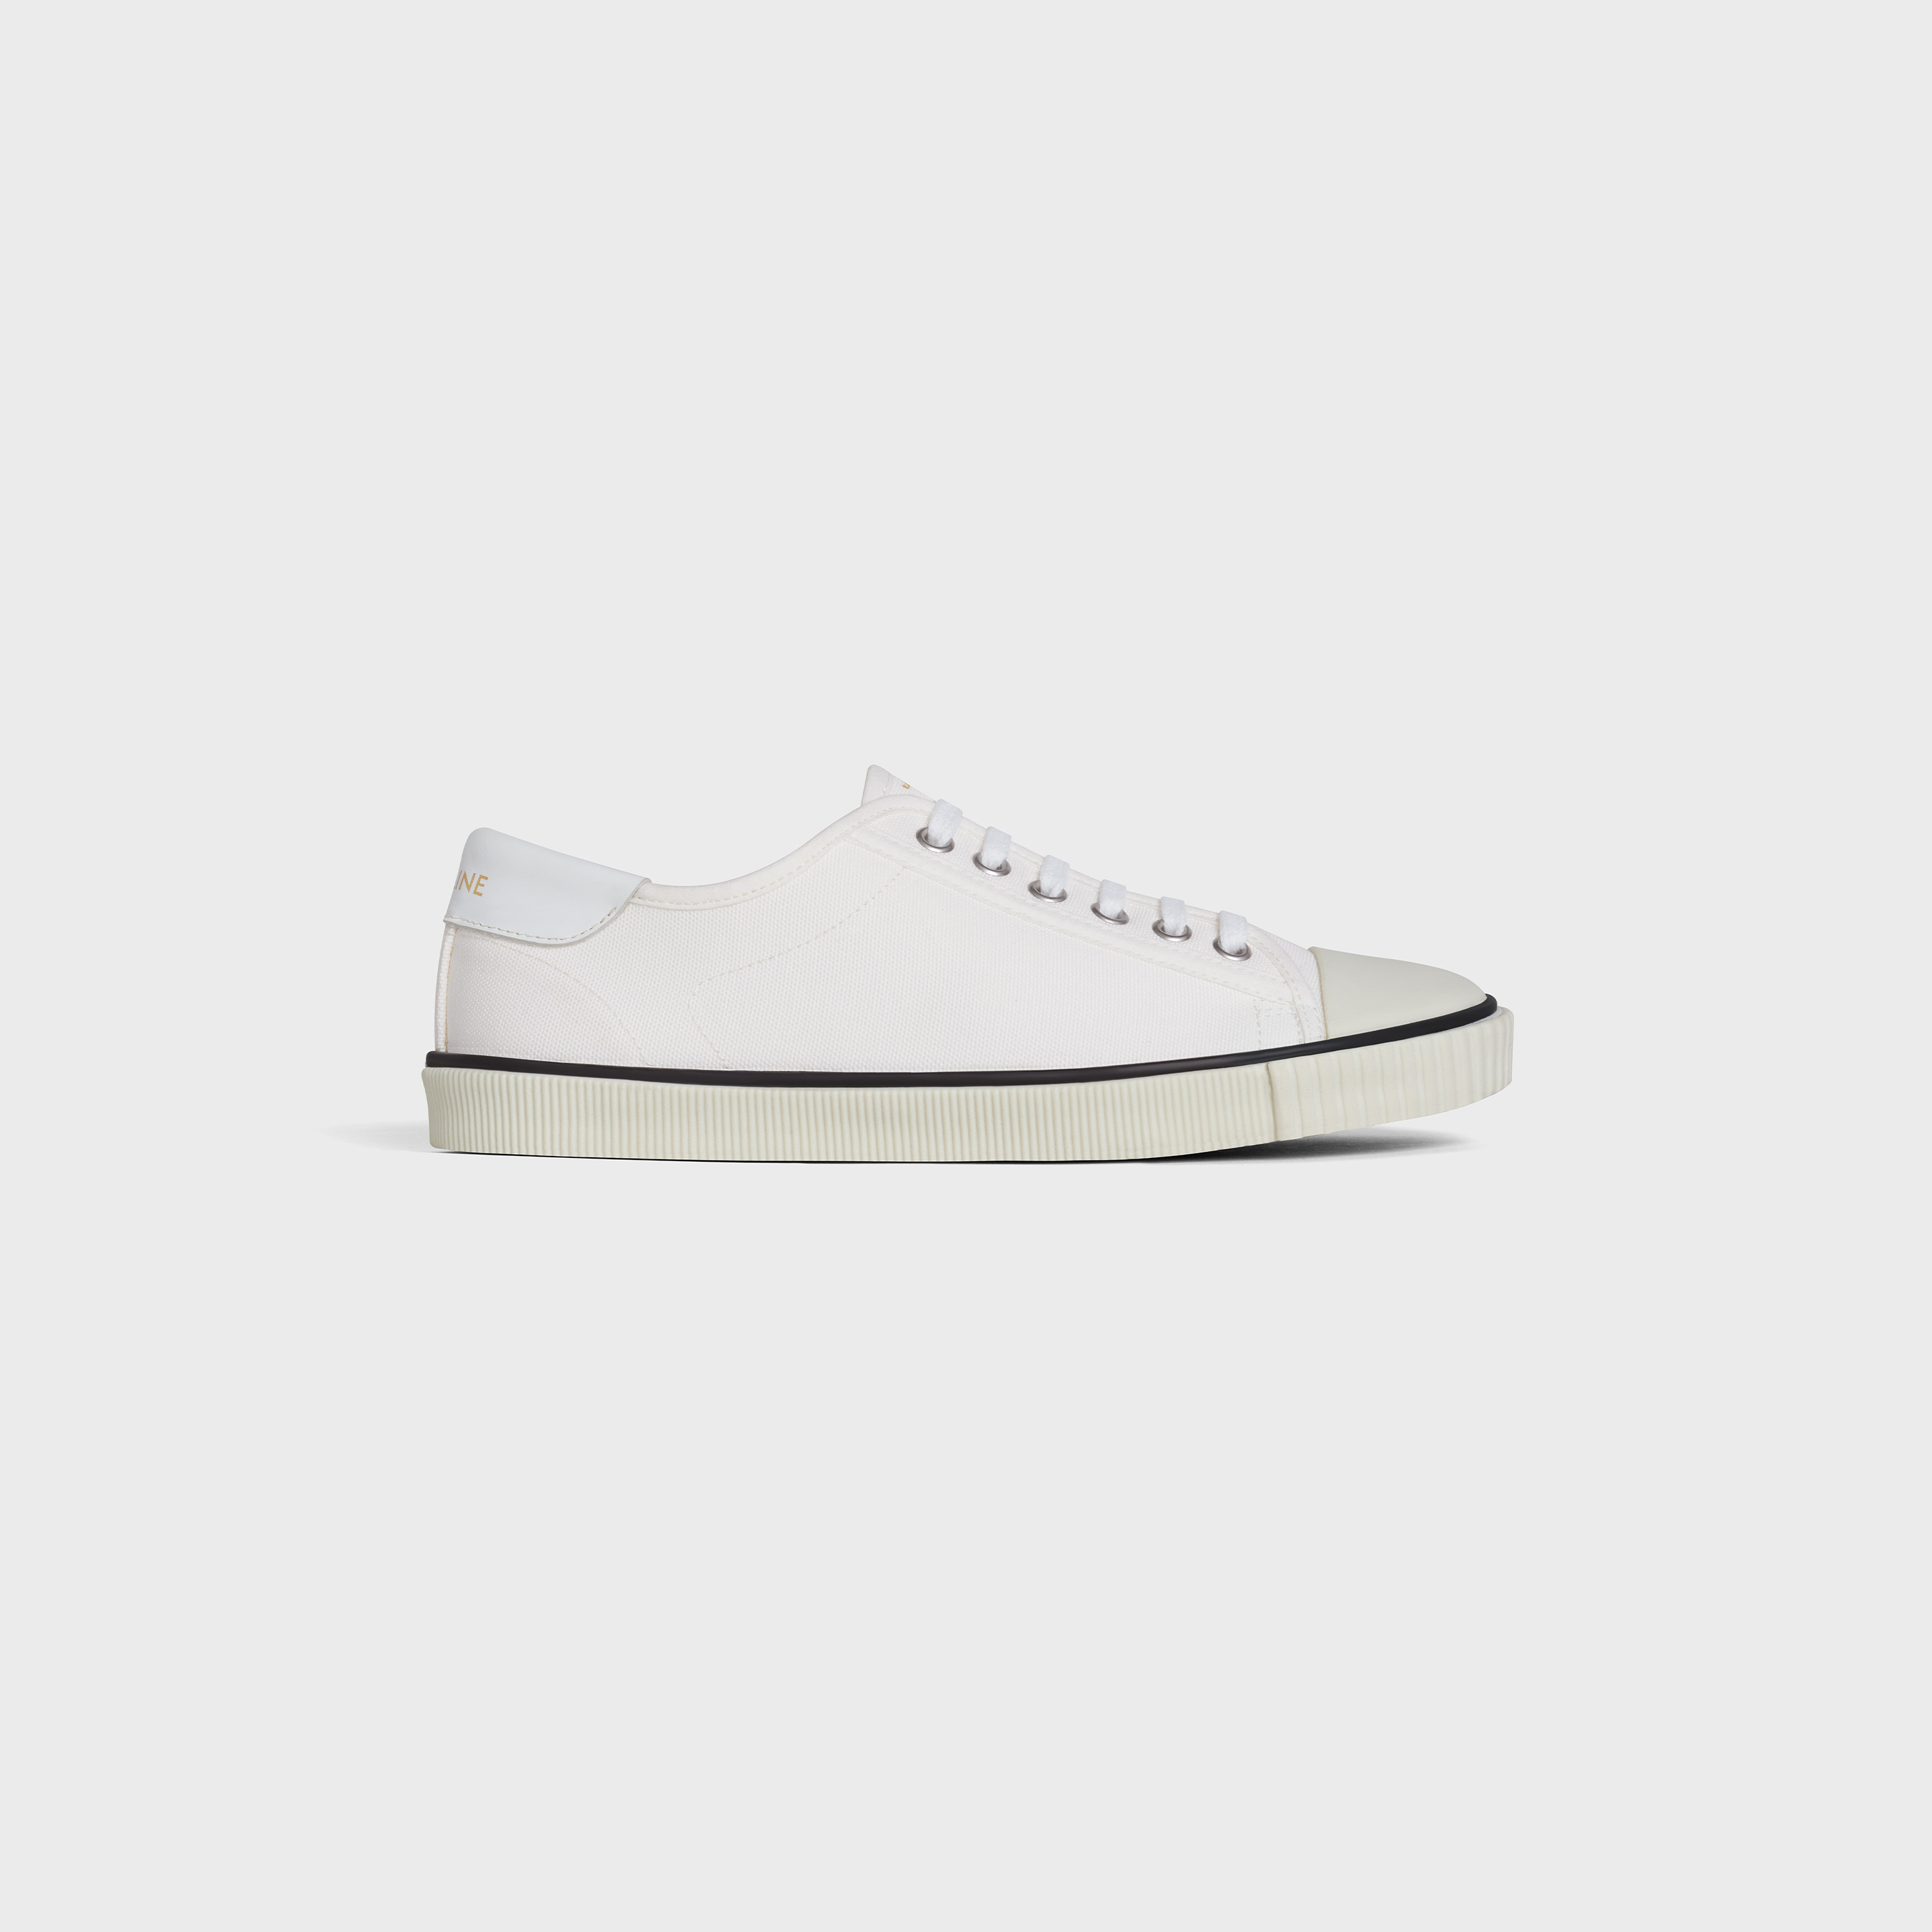 Celine Blank Low Lace Up Sneaker with